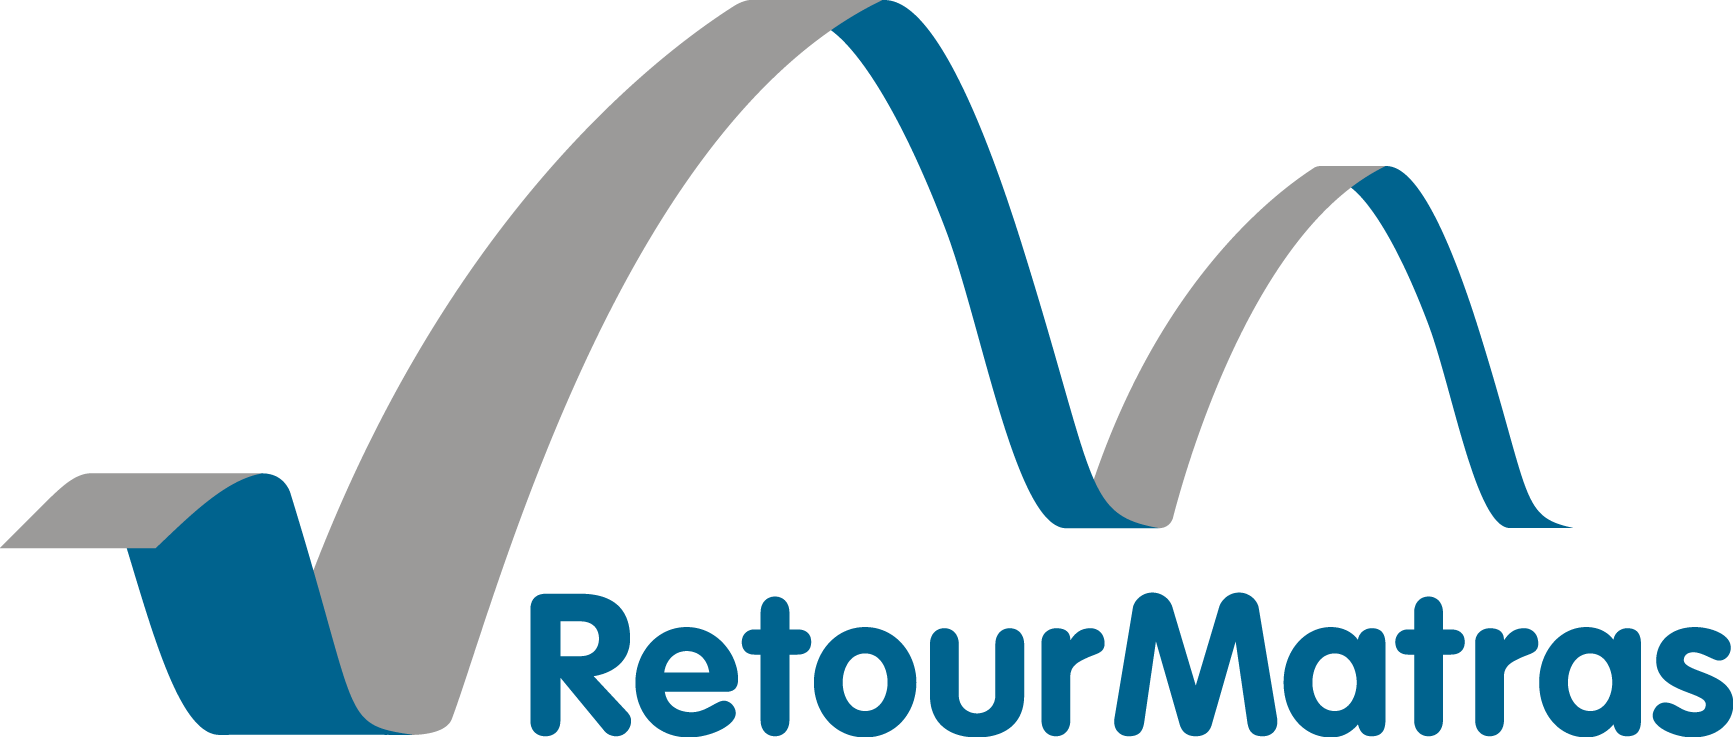 RetourMatras-100% matras recycling